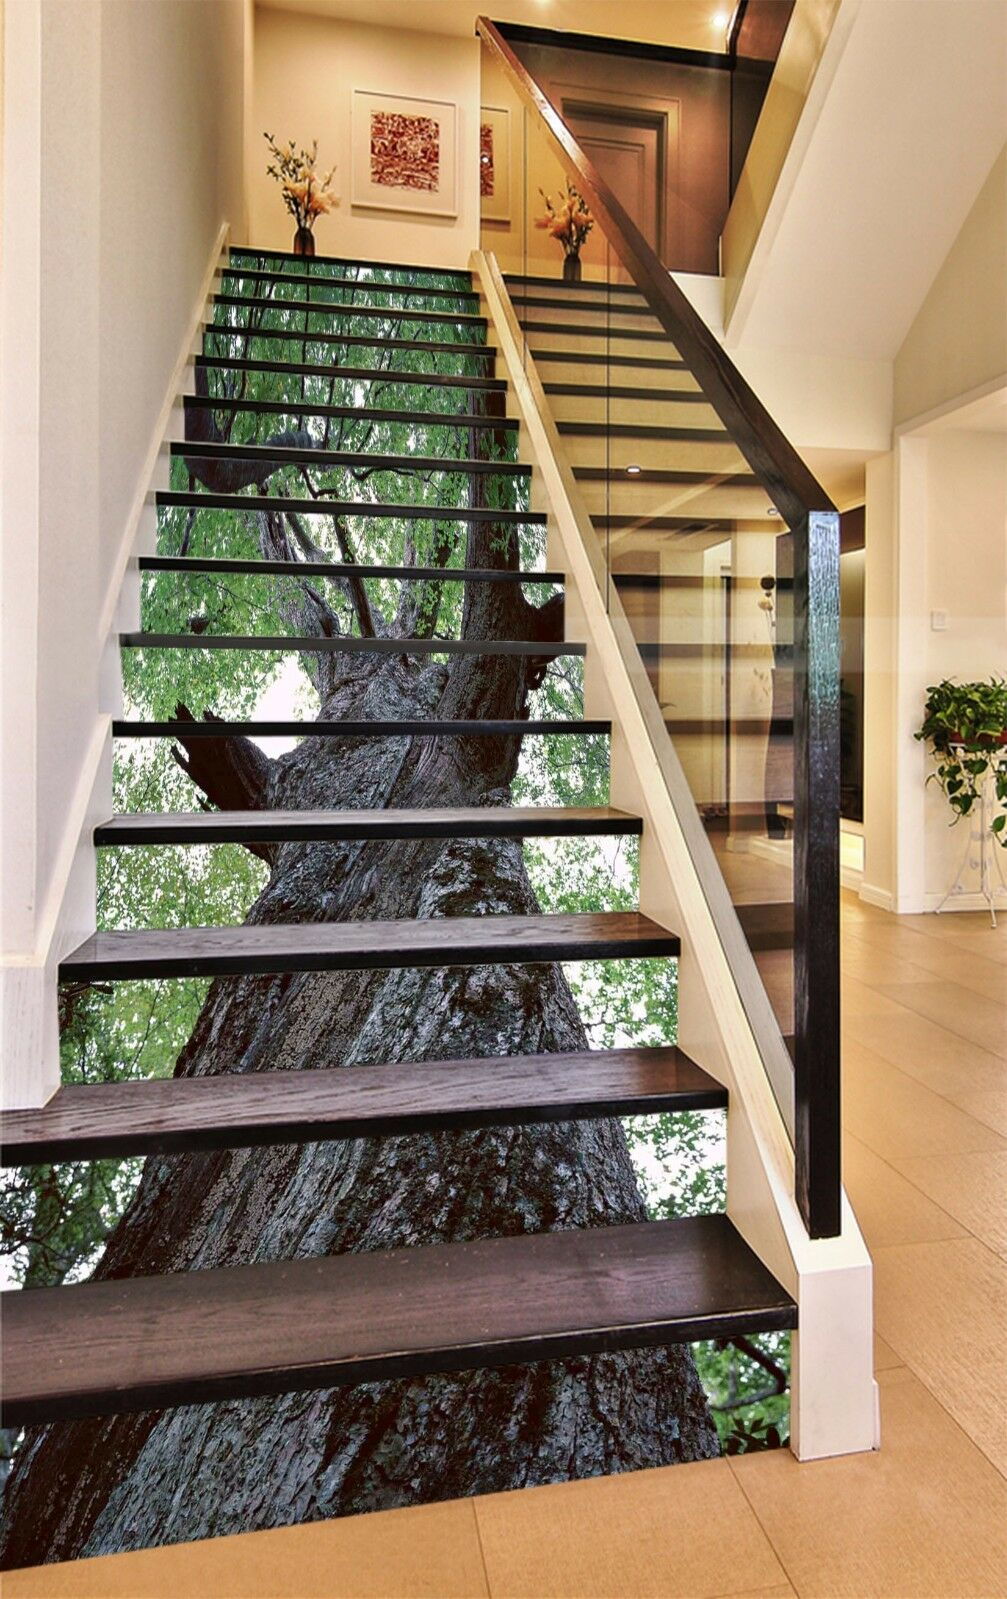 3D Strong Tree 772 Stair Risers Decoration Photo Mural Vinyl Decal Wallpaper AU